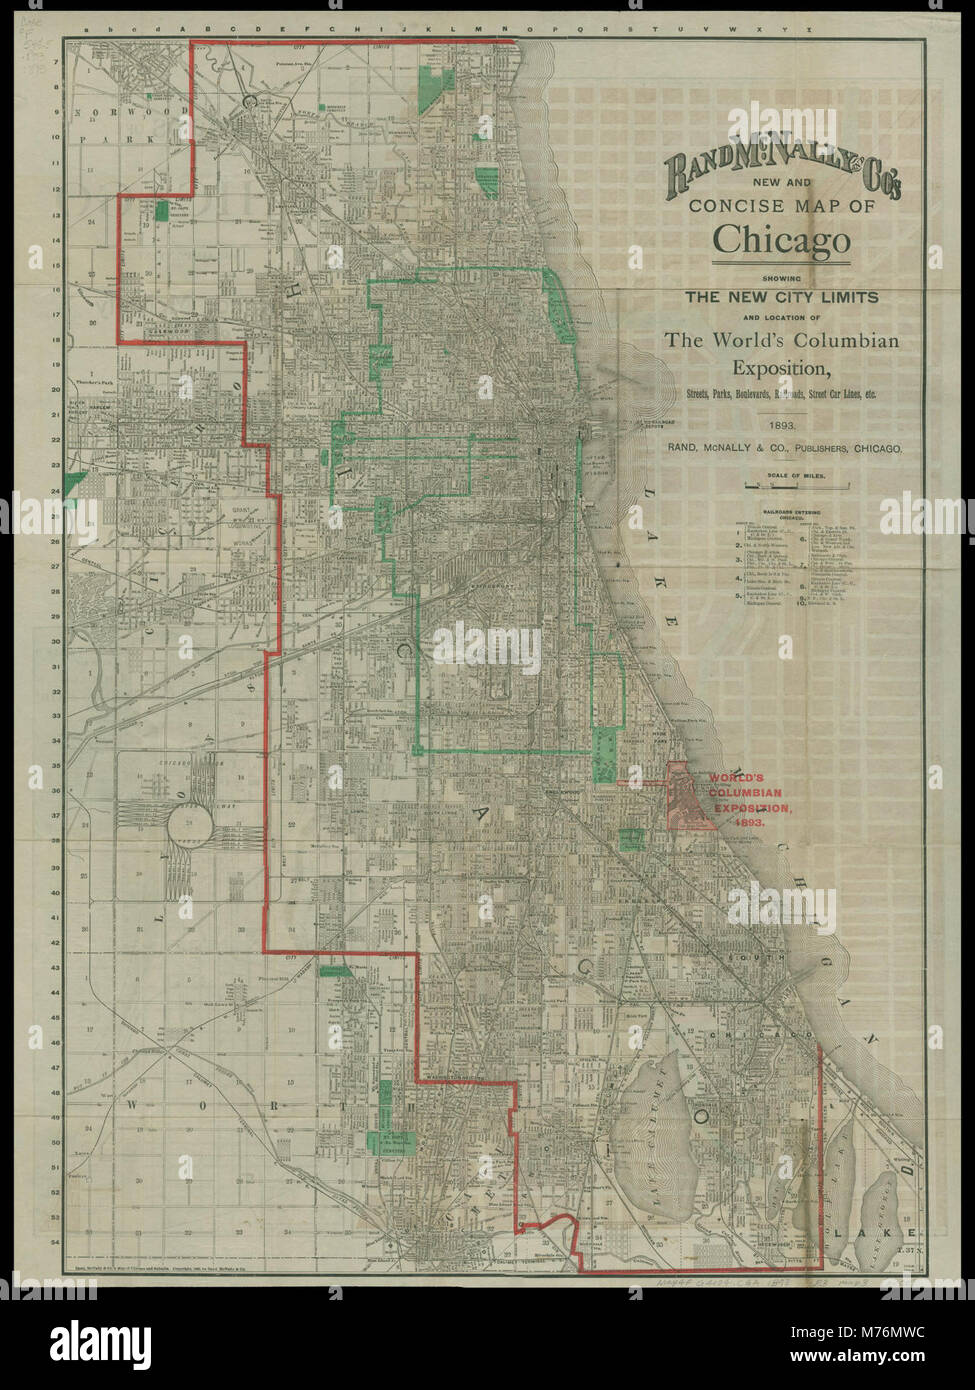 Rand McNally & Co's New and concise map of Chicago , showing the new on